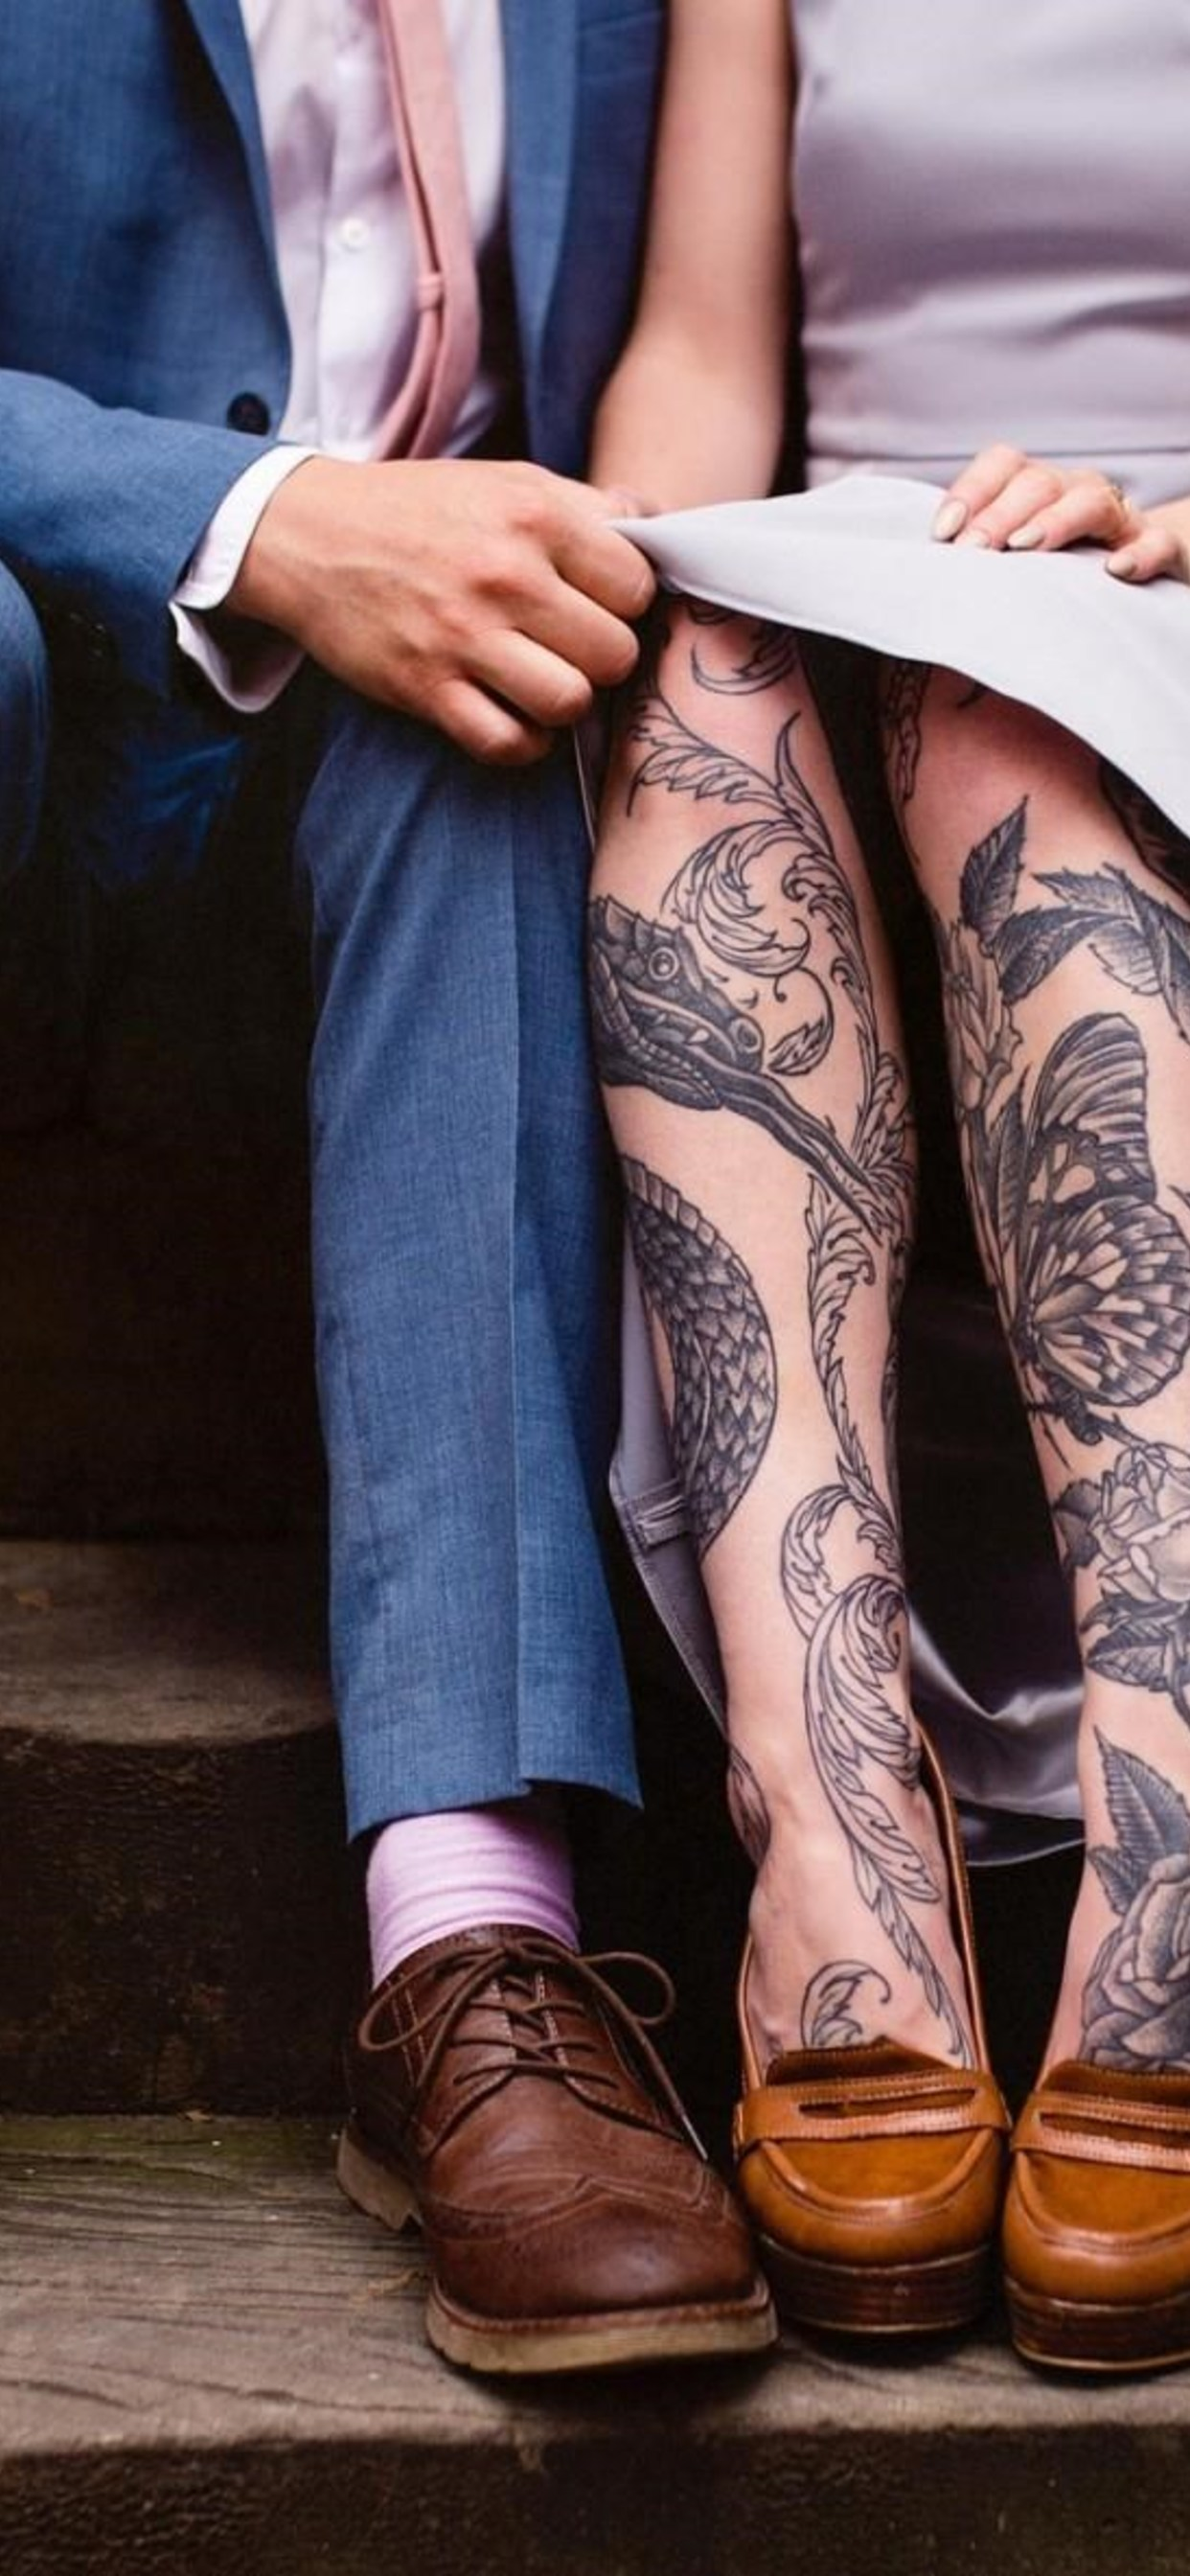 Girl With Tattoos On Legs Iphone Xs Wallpaper 4k Tattoo